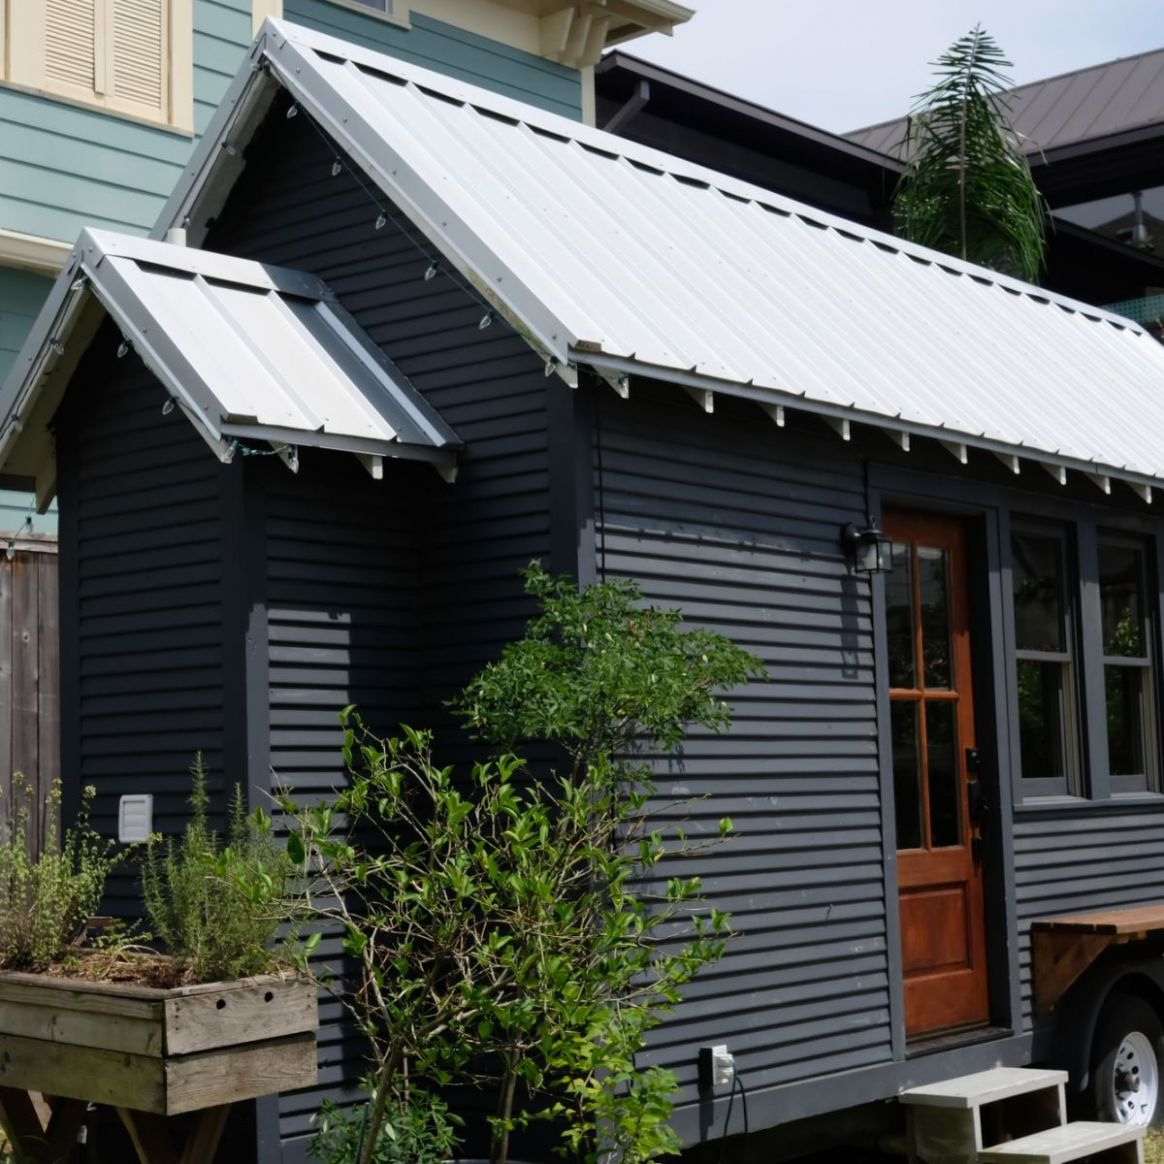 Rustic Minimal Tiny House on Wheels - Tiny House for Sale in Victoria,  Texas - Tiny House Listings - tiny house victoria